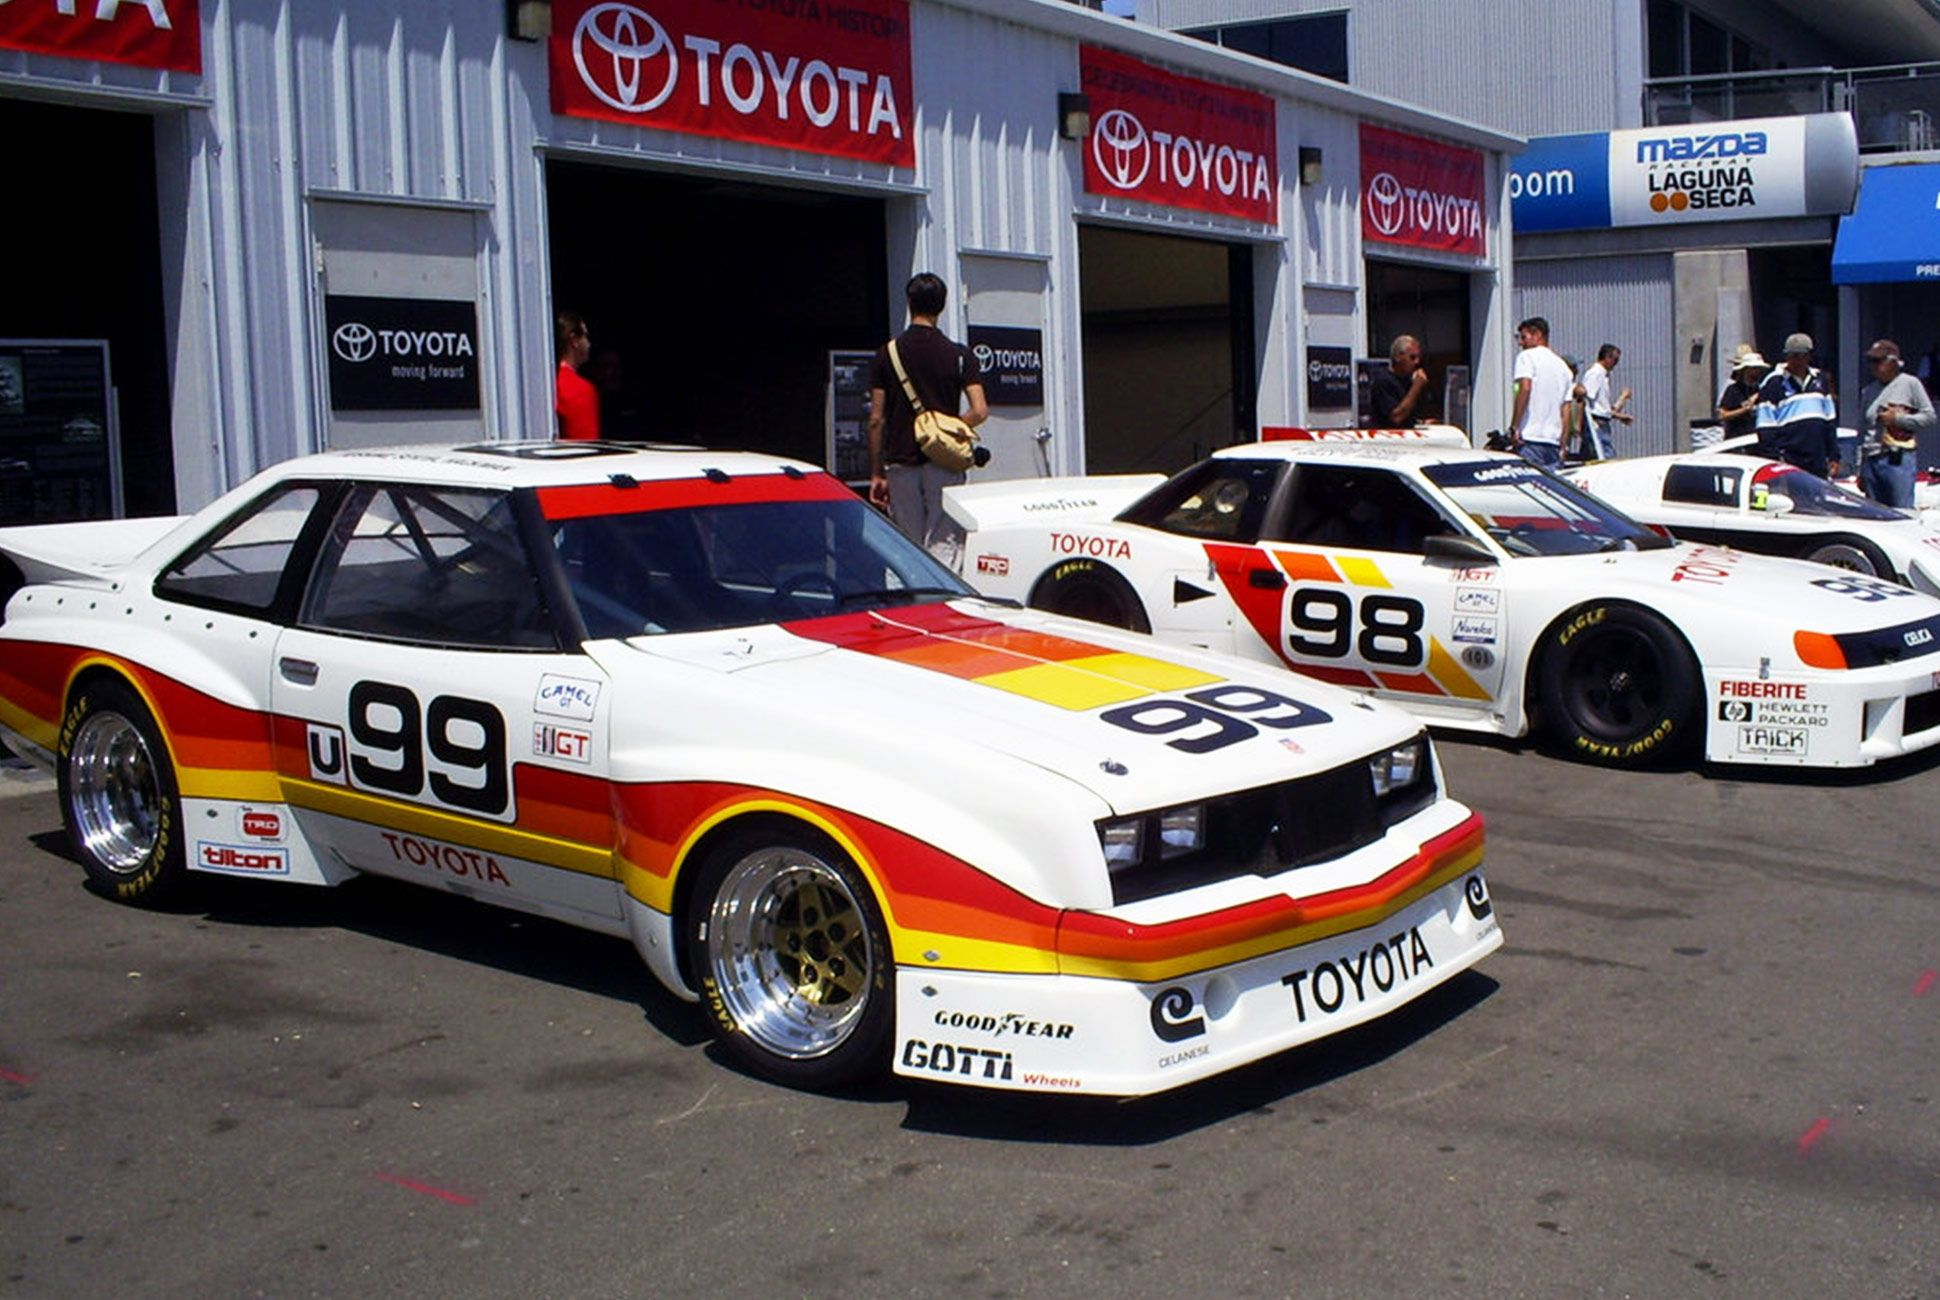 The 25 Greatest Racing Liveries of All Time | Toyota celica, Toyota ...